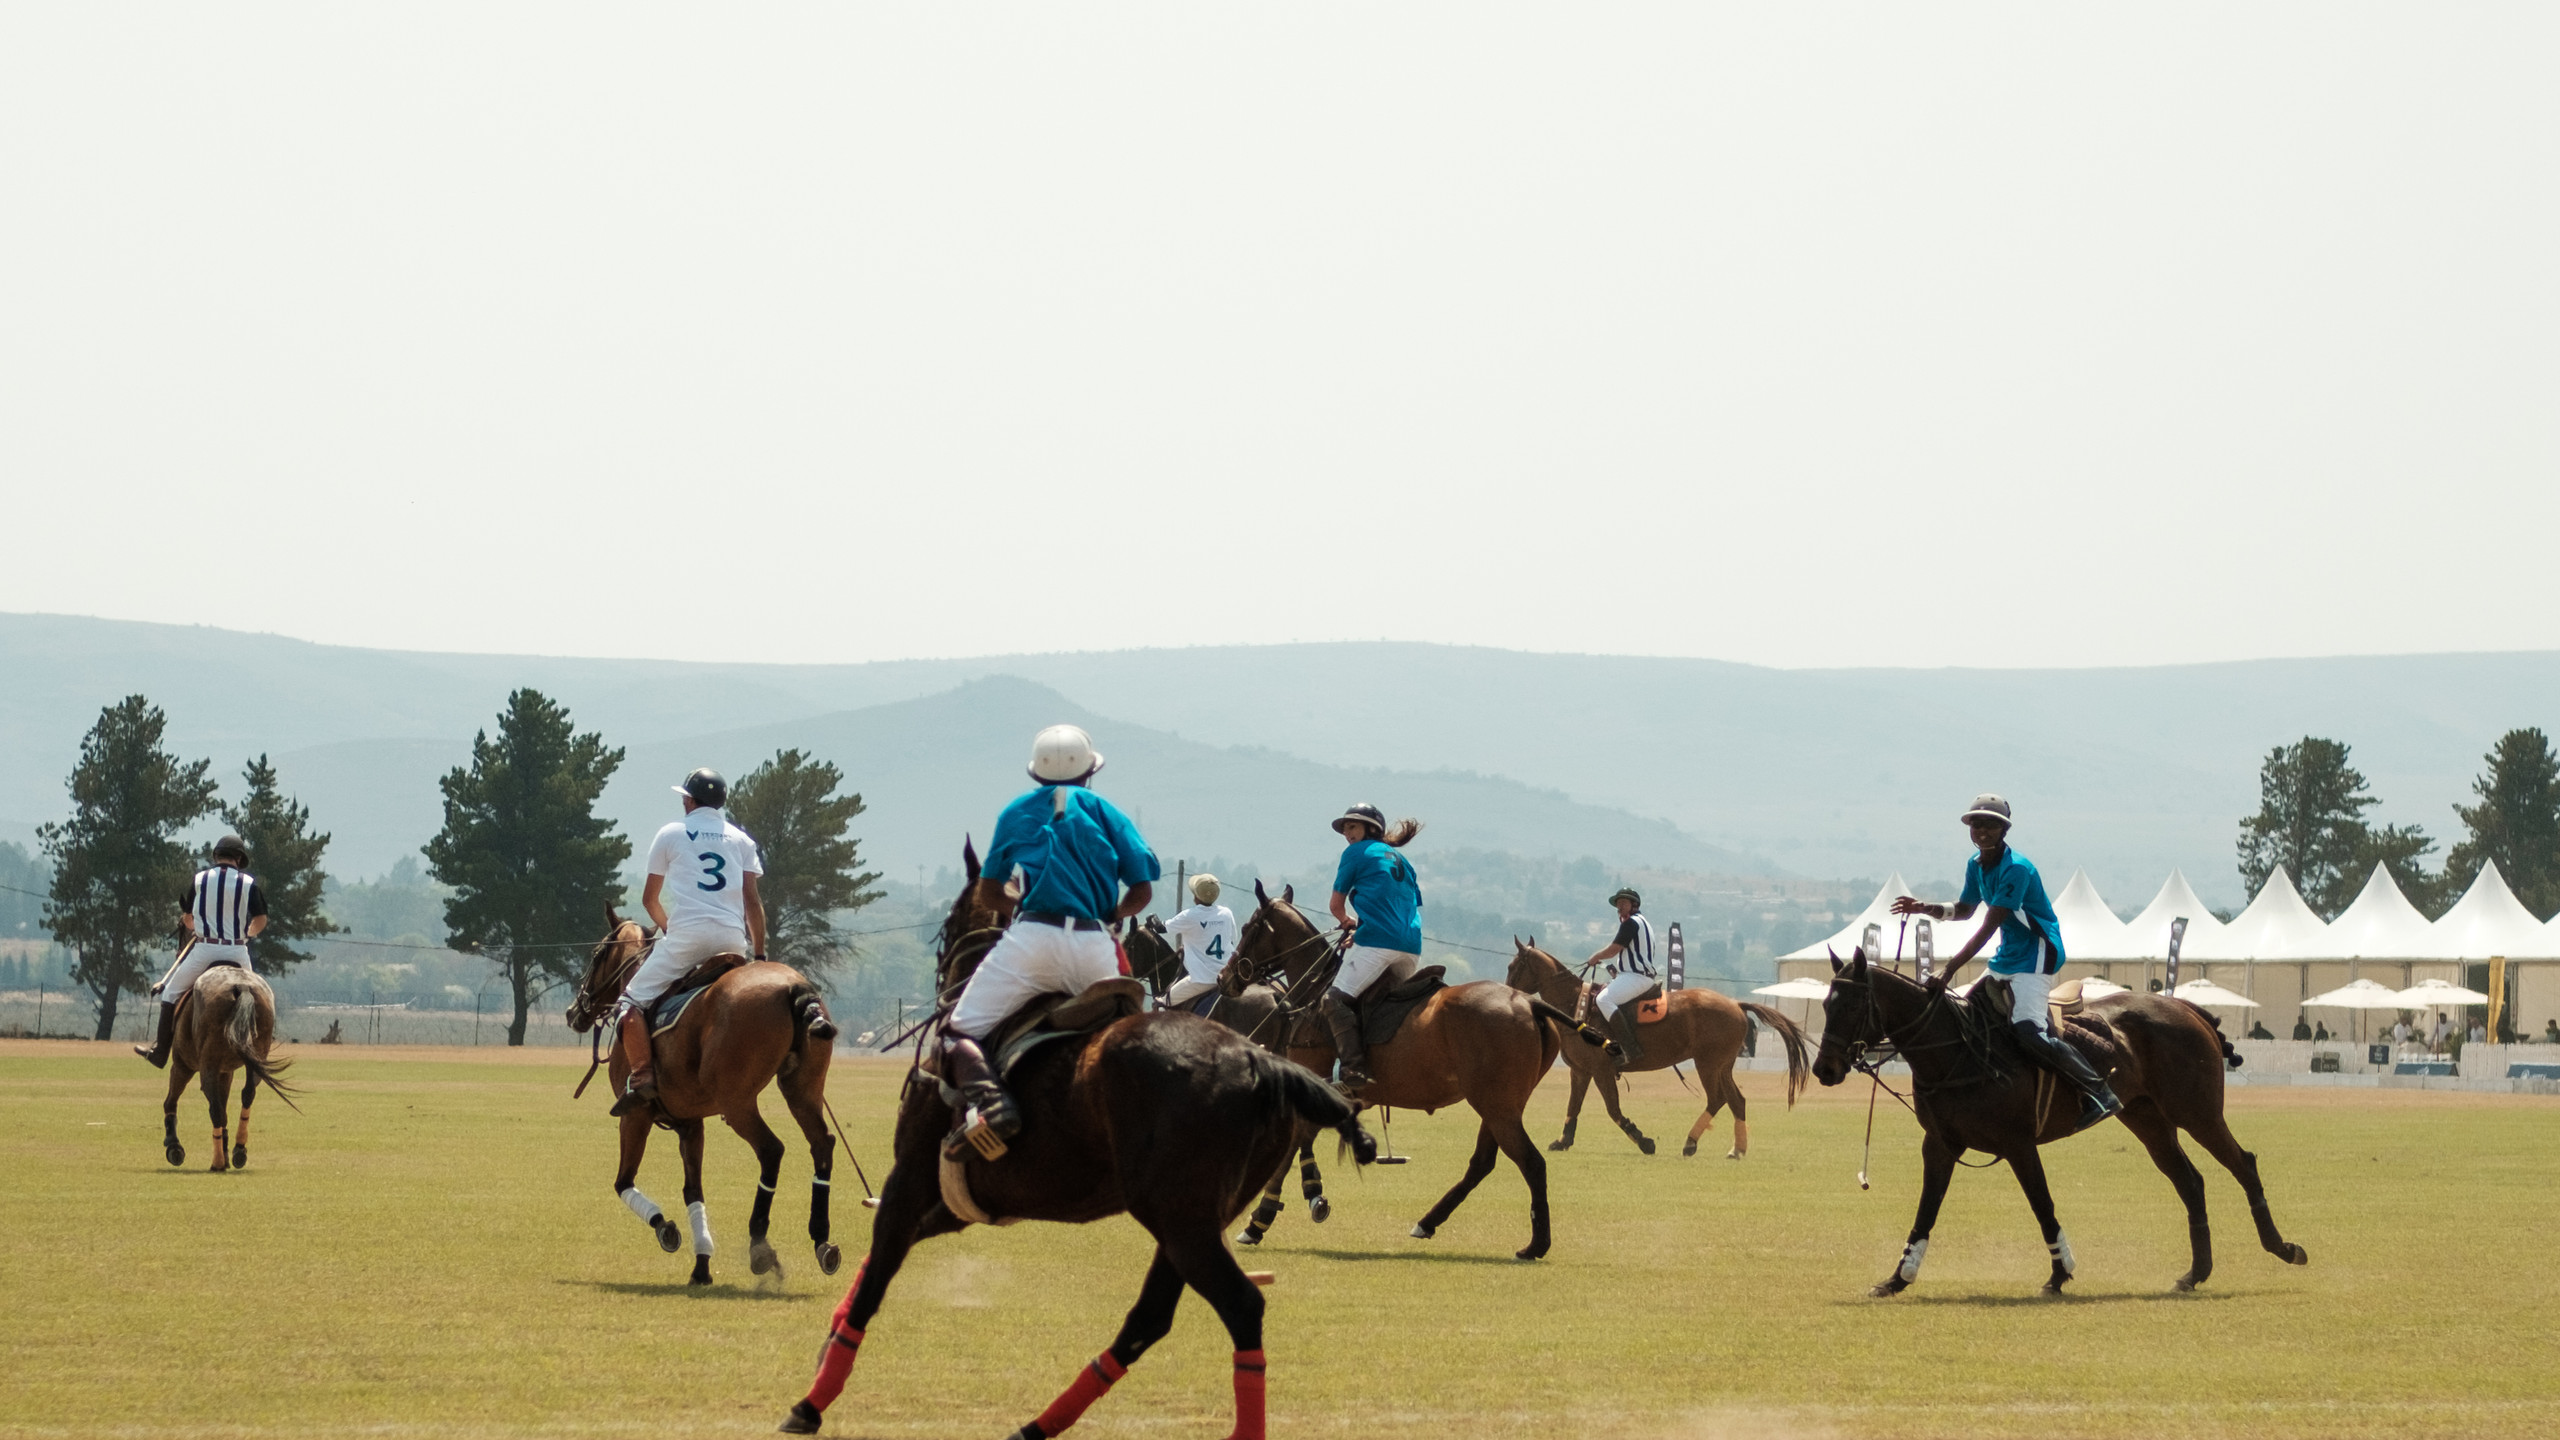 110th Annual Prince of Wales Polo Cu